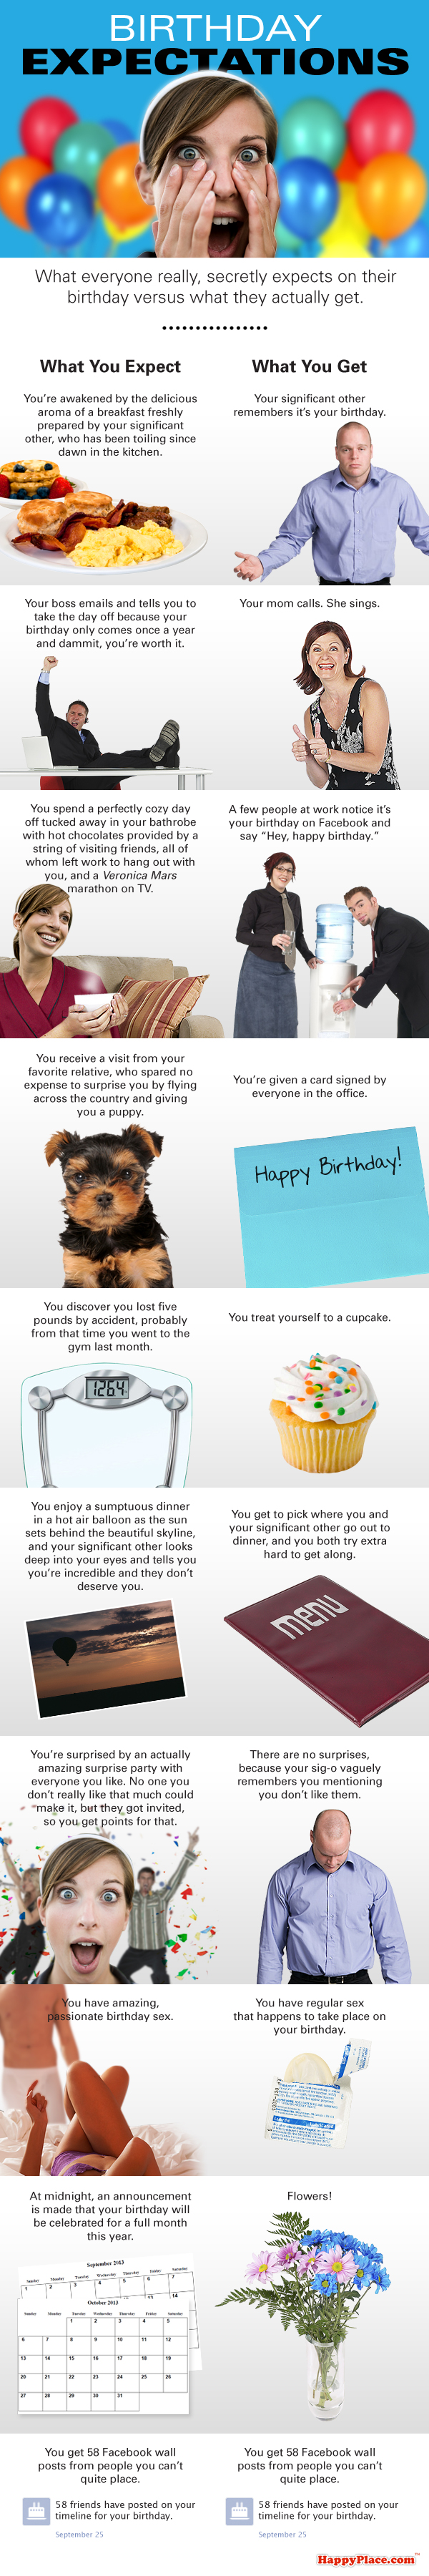 What everyone really, secretly expects on their birthday vs. what they actually get.